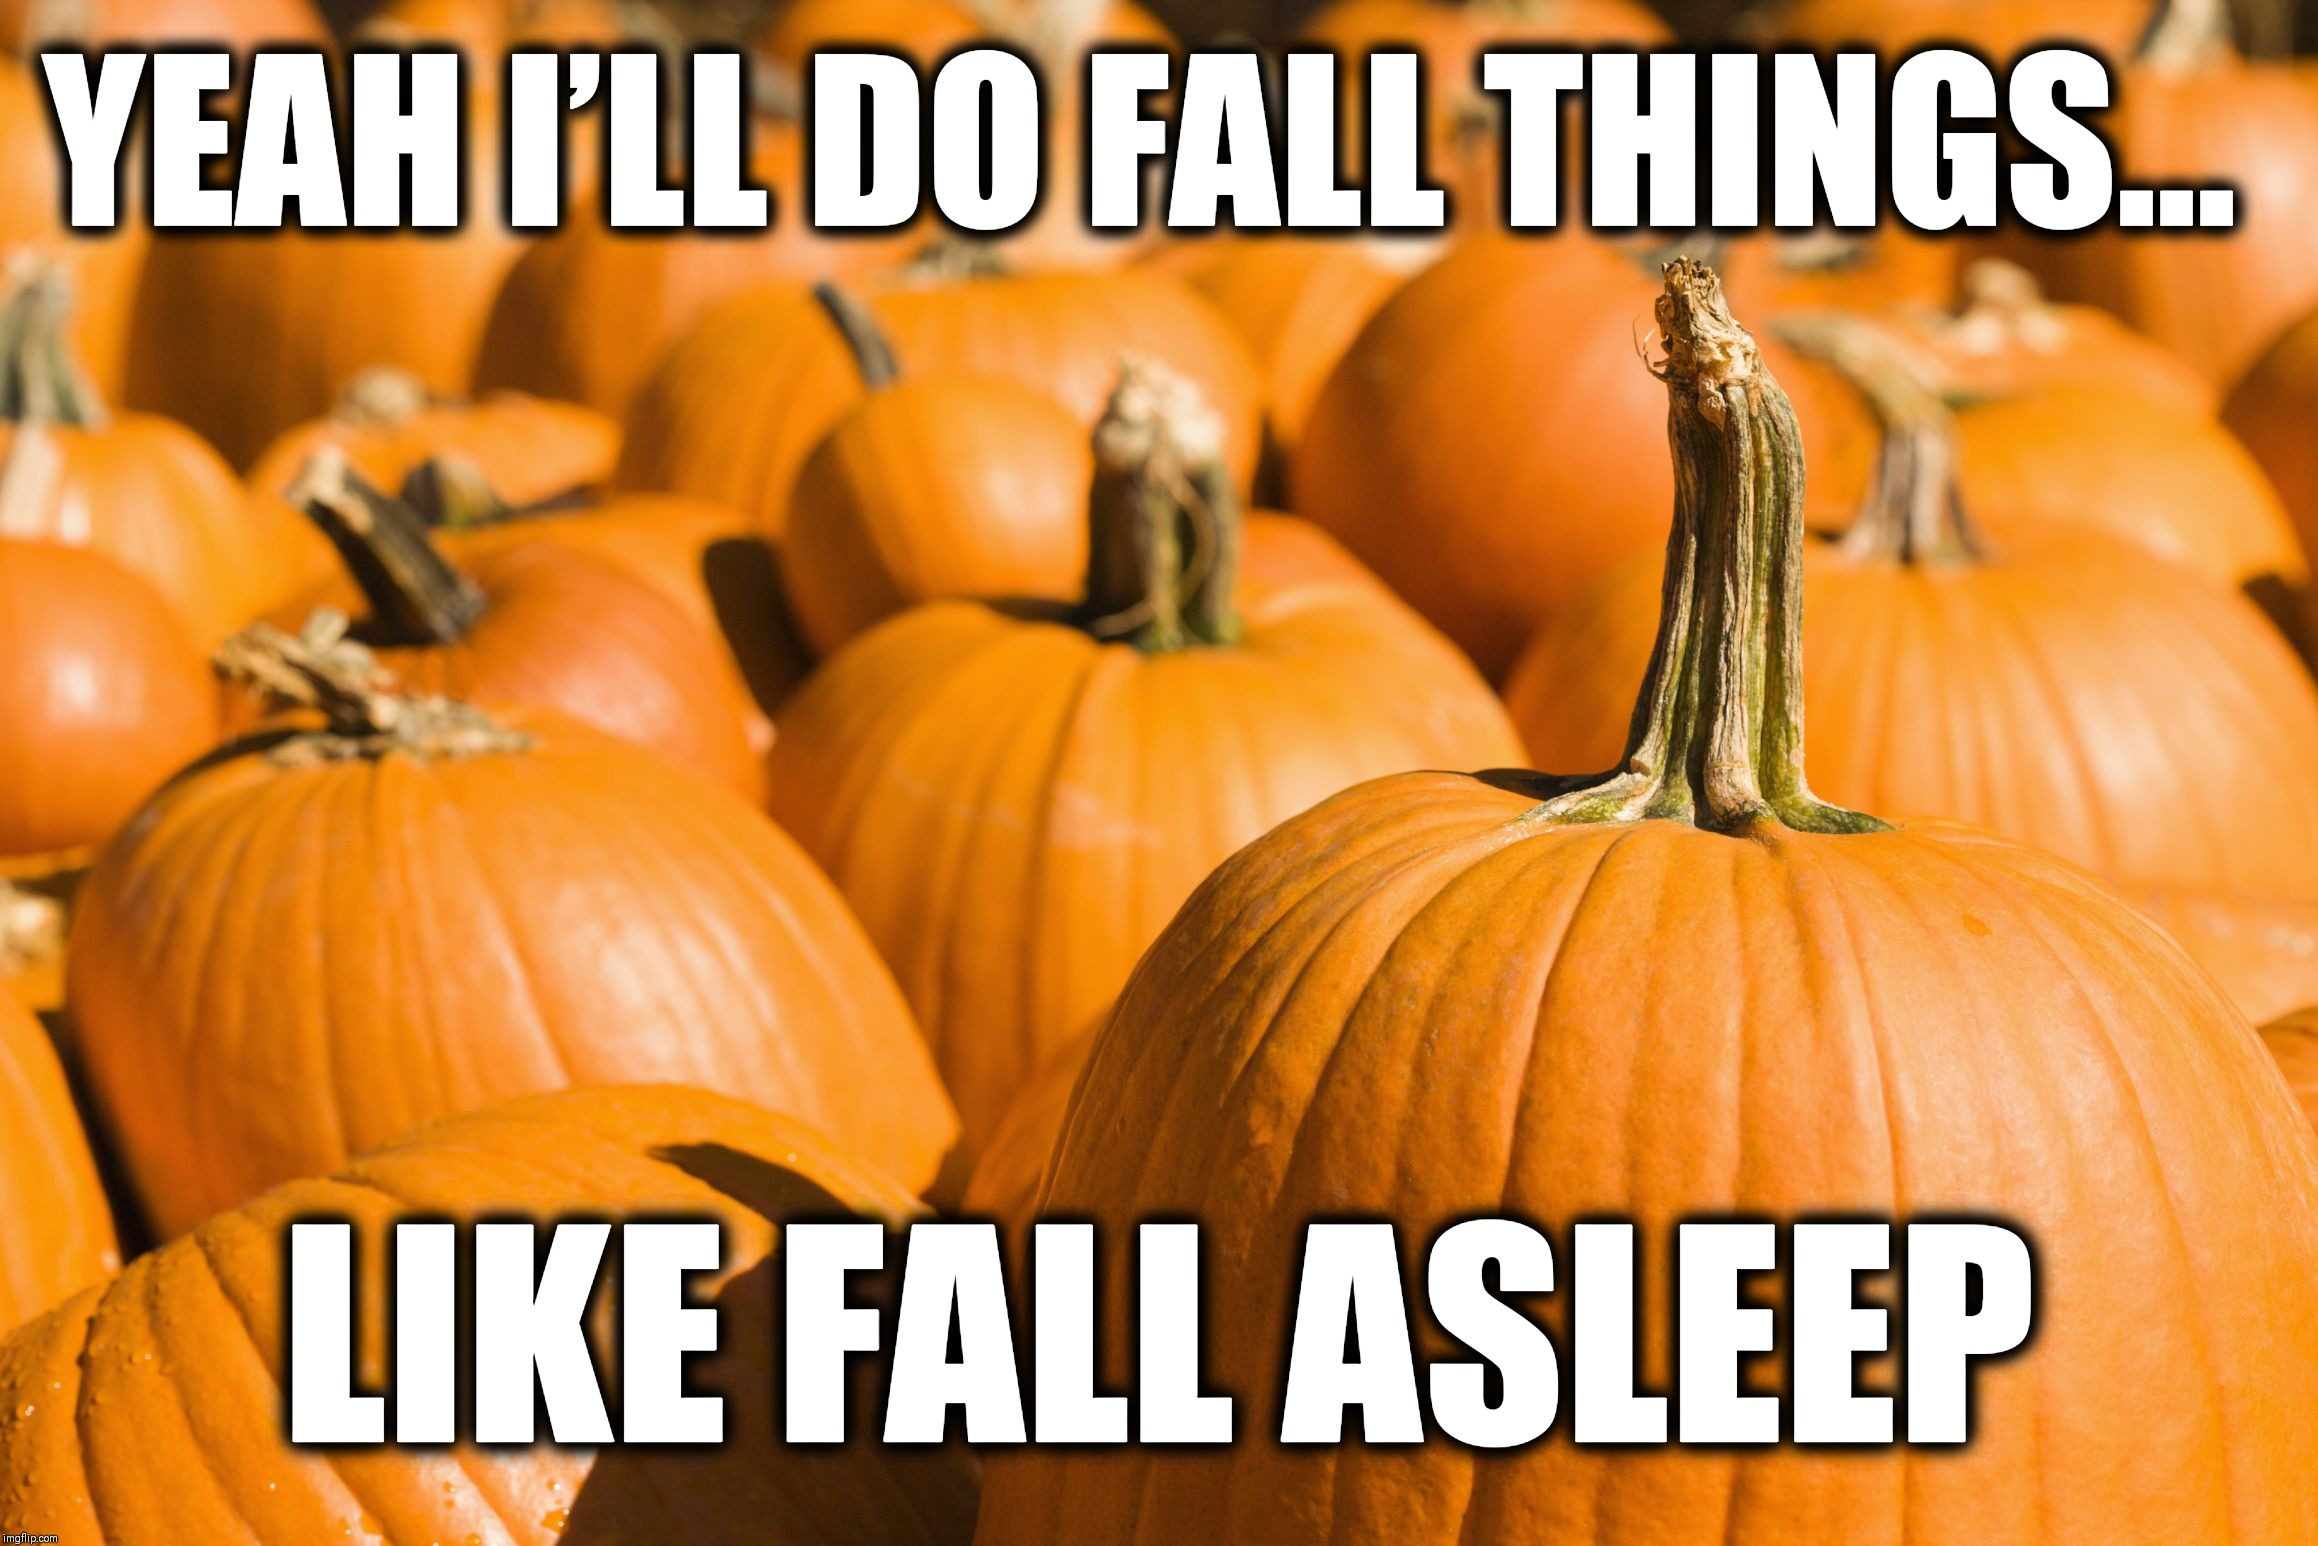 Fall things | YEAH I'LL DO FALL THINGS... LIKE FALL ASLEEP | image tagged in fall things,fall asleep,funny,memes,pumpkins,autumn | made w/ Imgflip meme maker